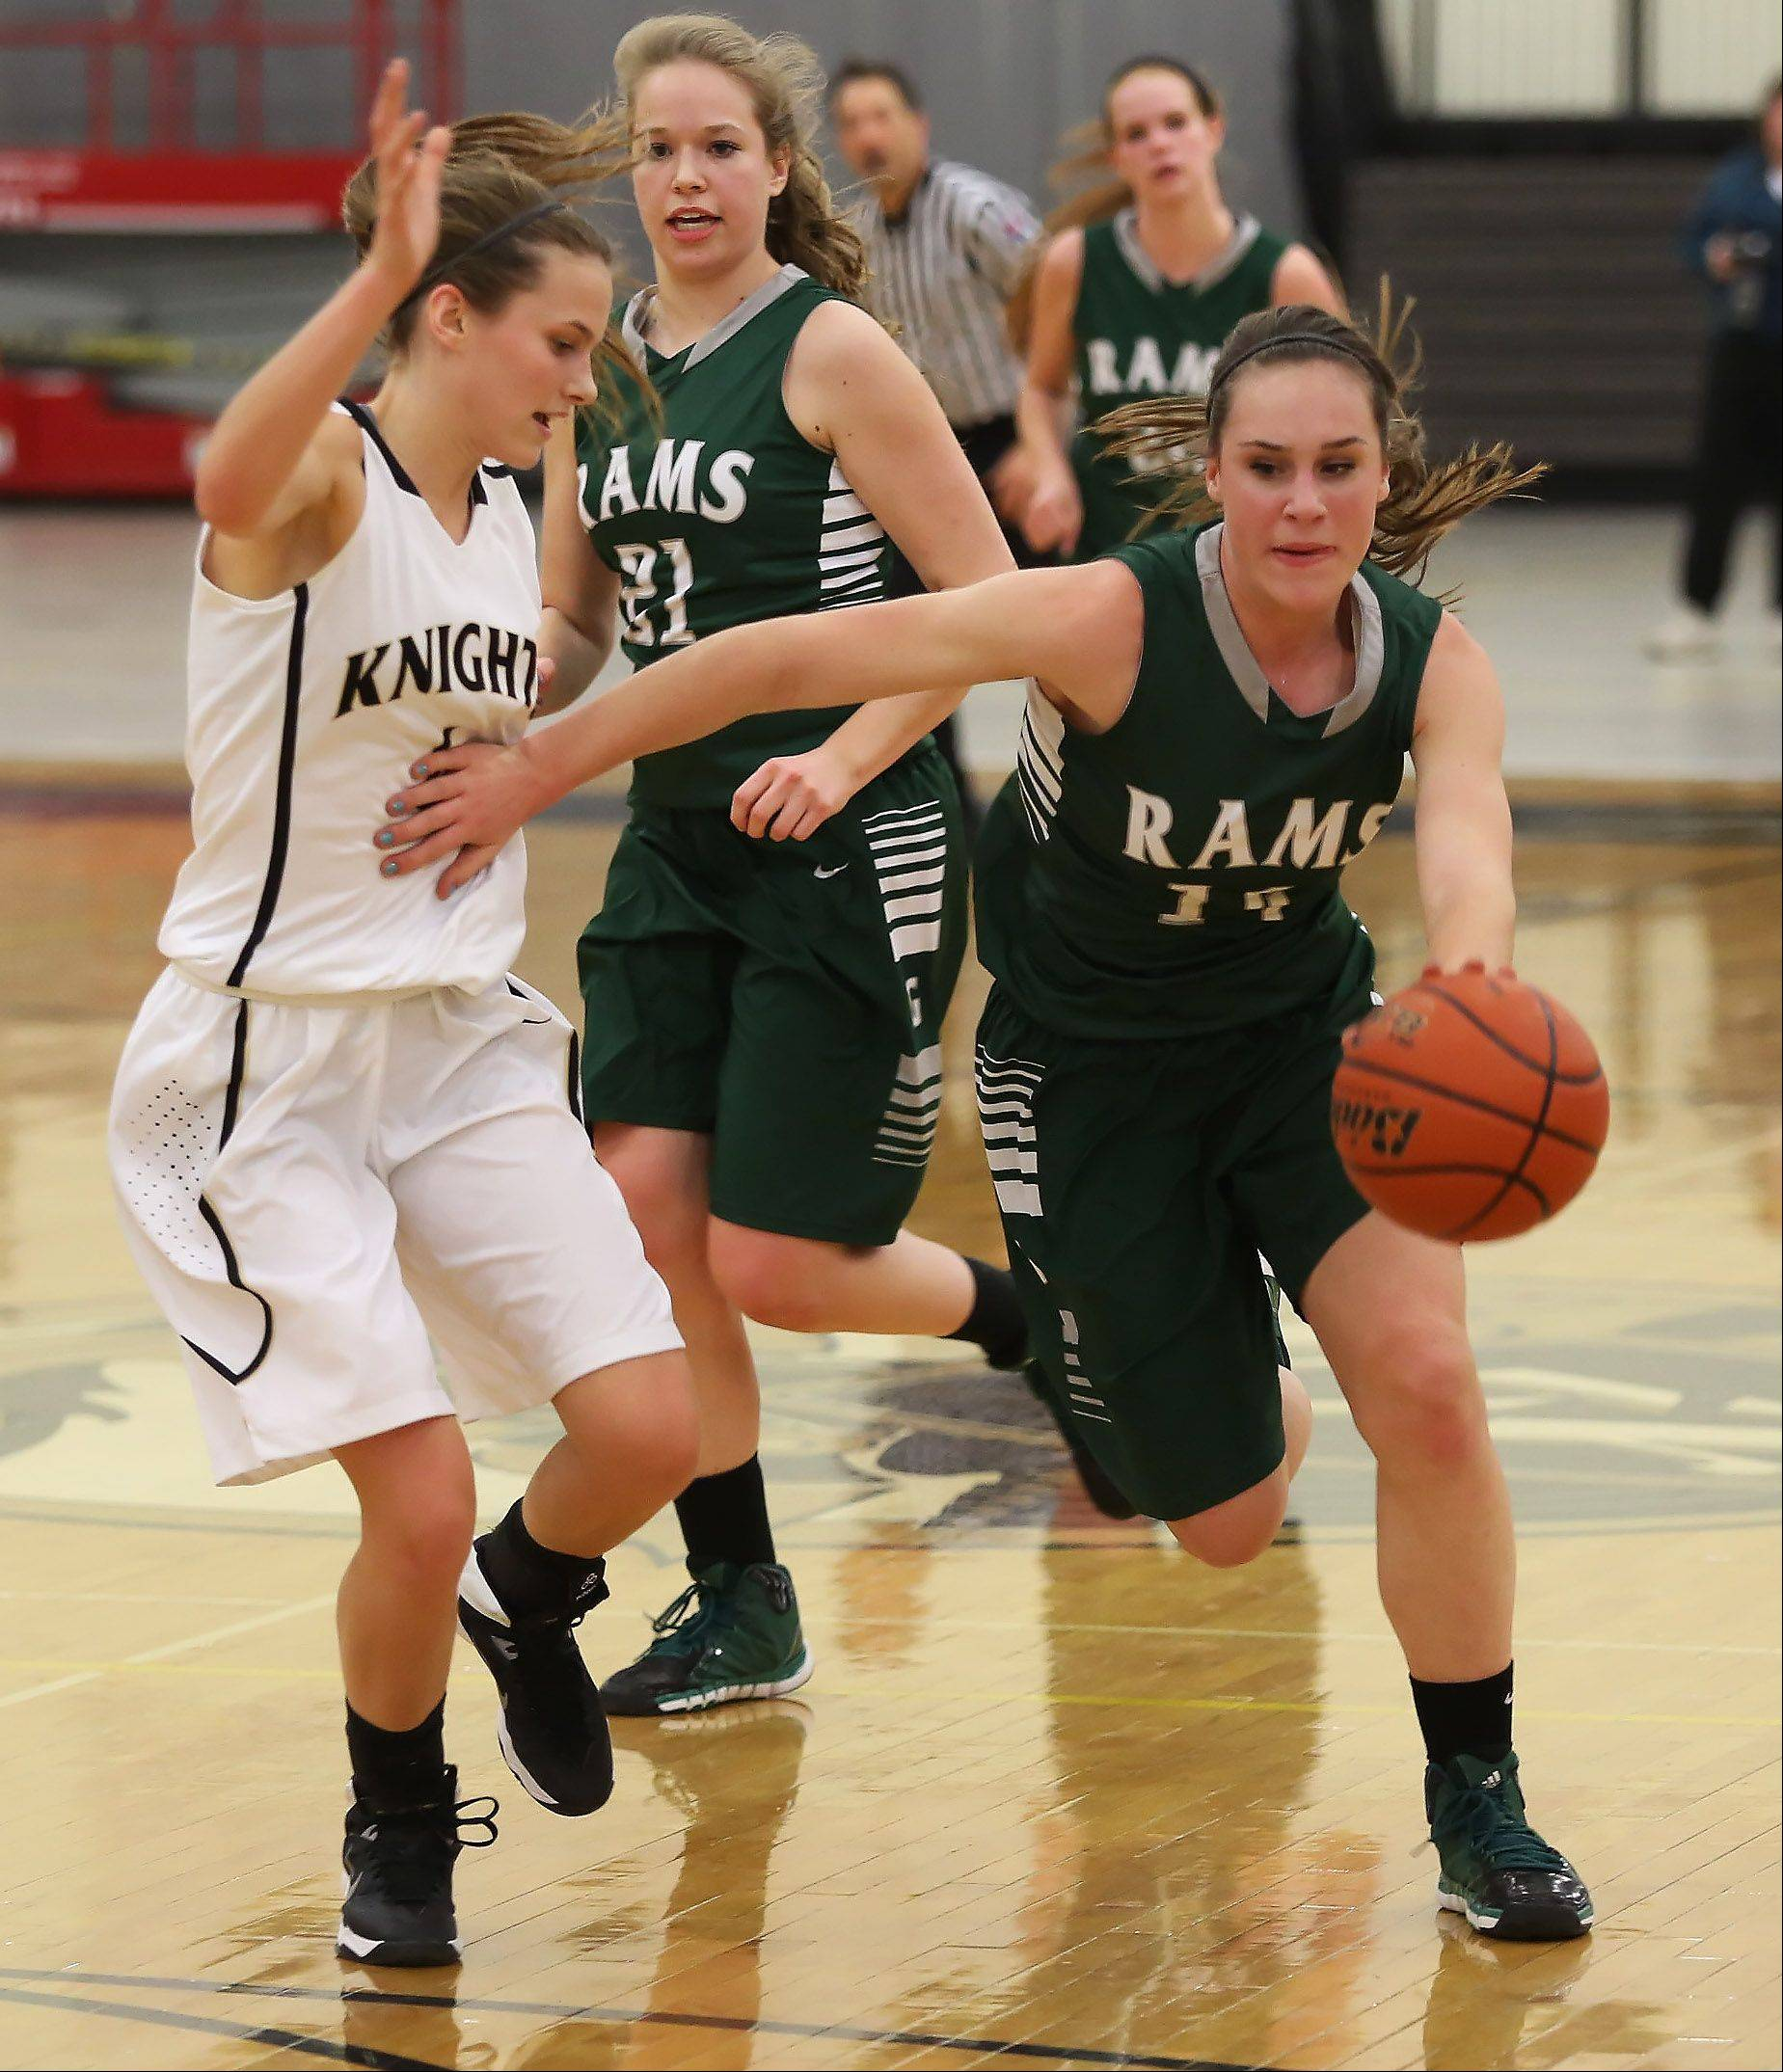 Grayslake Central guard Kayley Larson pushes Grayslake North guard Maggie Fish on a drive to the basket Thursday at Grayslake North.